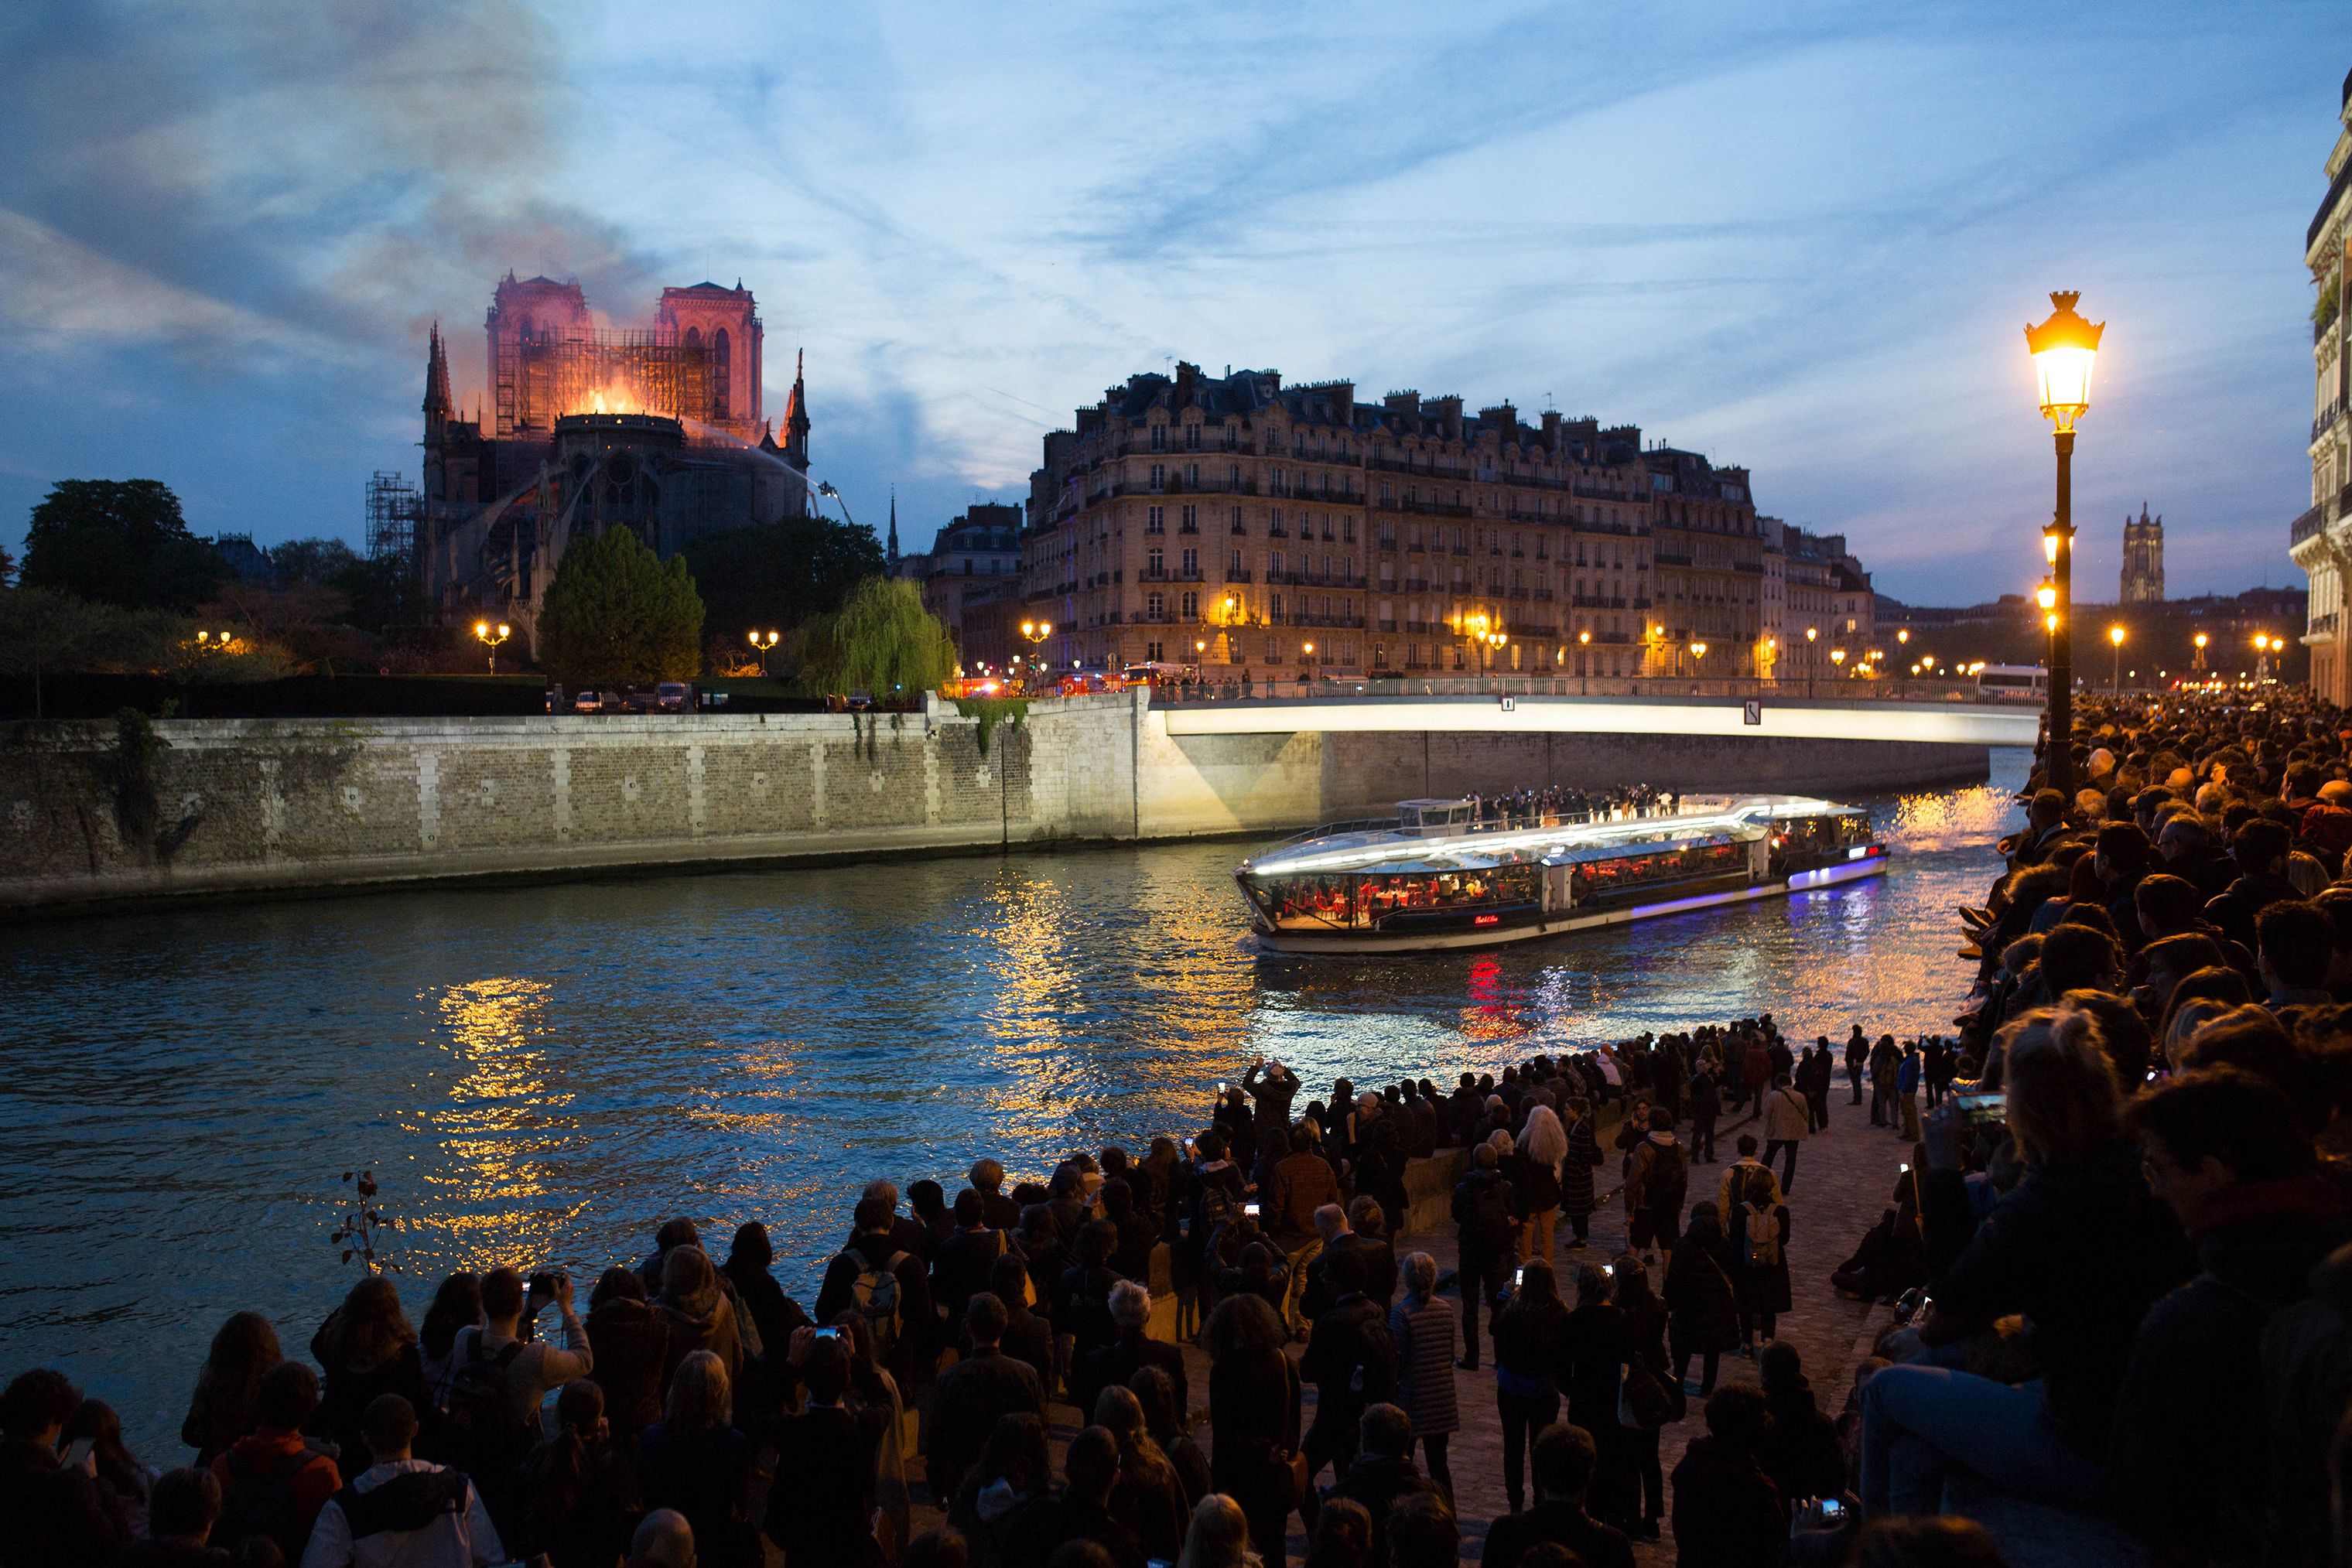 Bystanders look on as flames and smoke are seen billowing from the roof at Notre-Dame Cathedral with the Seine and boats by sun set river in Paris on April 15, 2019.